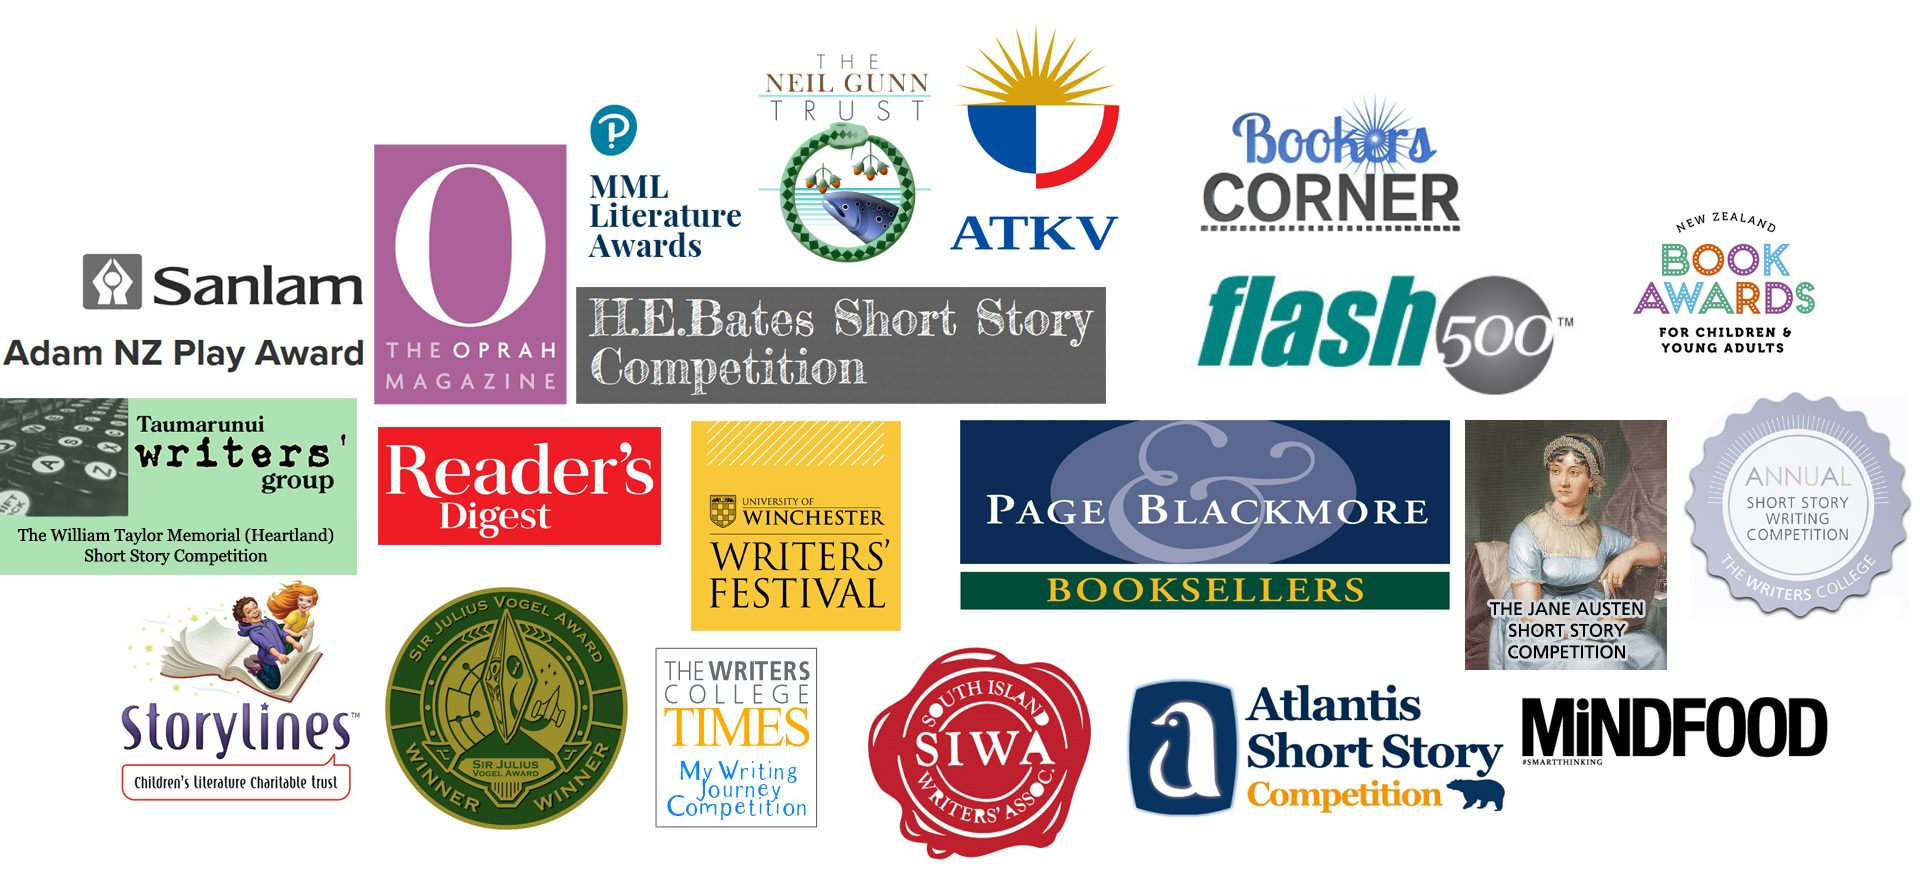 Our Writers College students have been finalists or winners in these global writing competitions